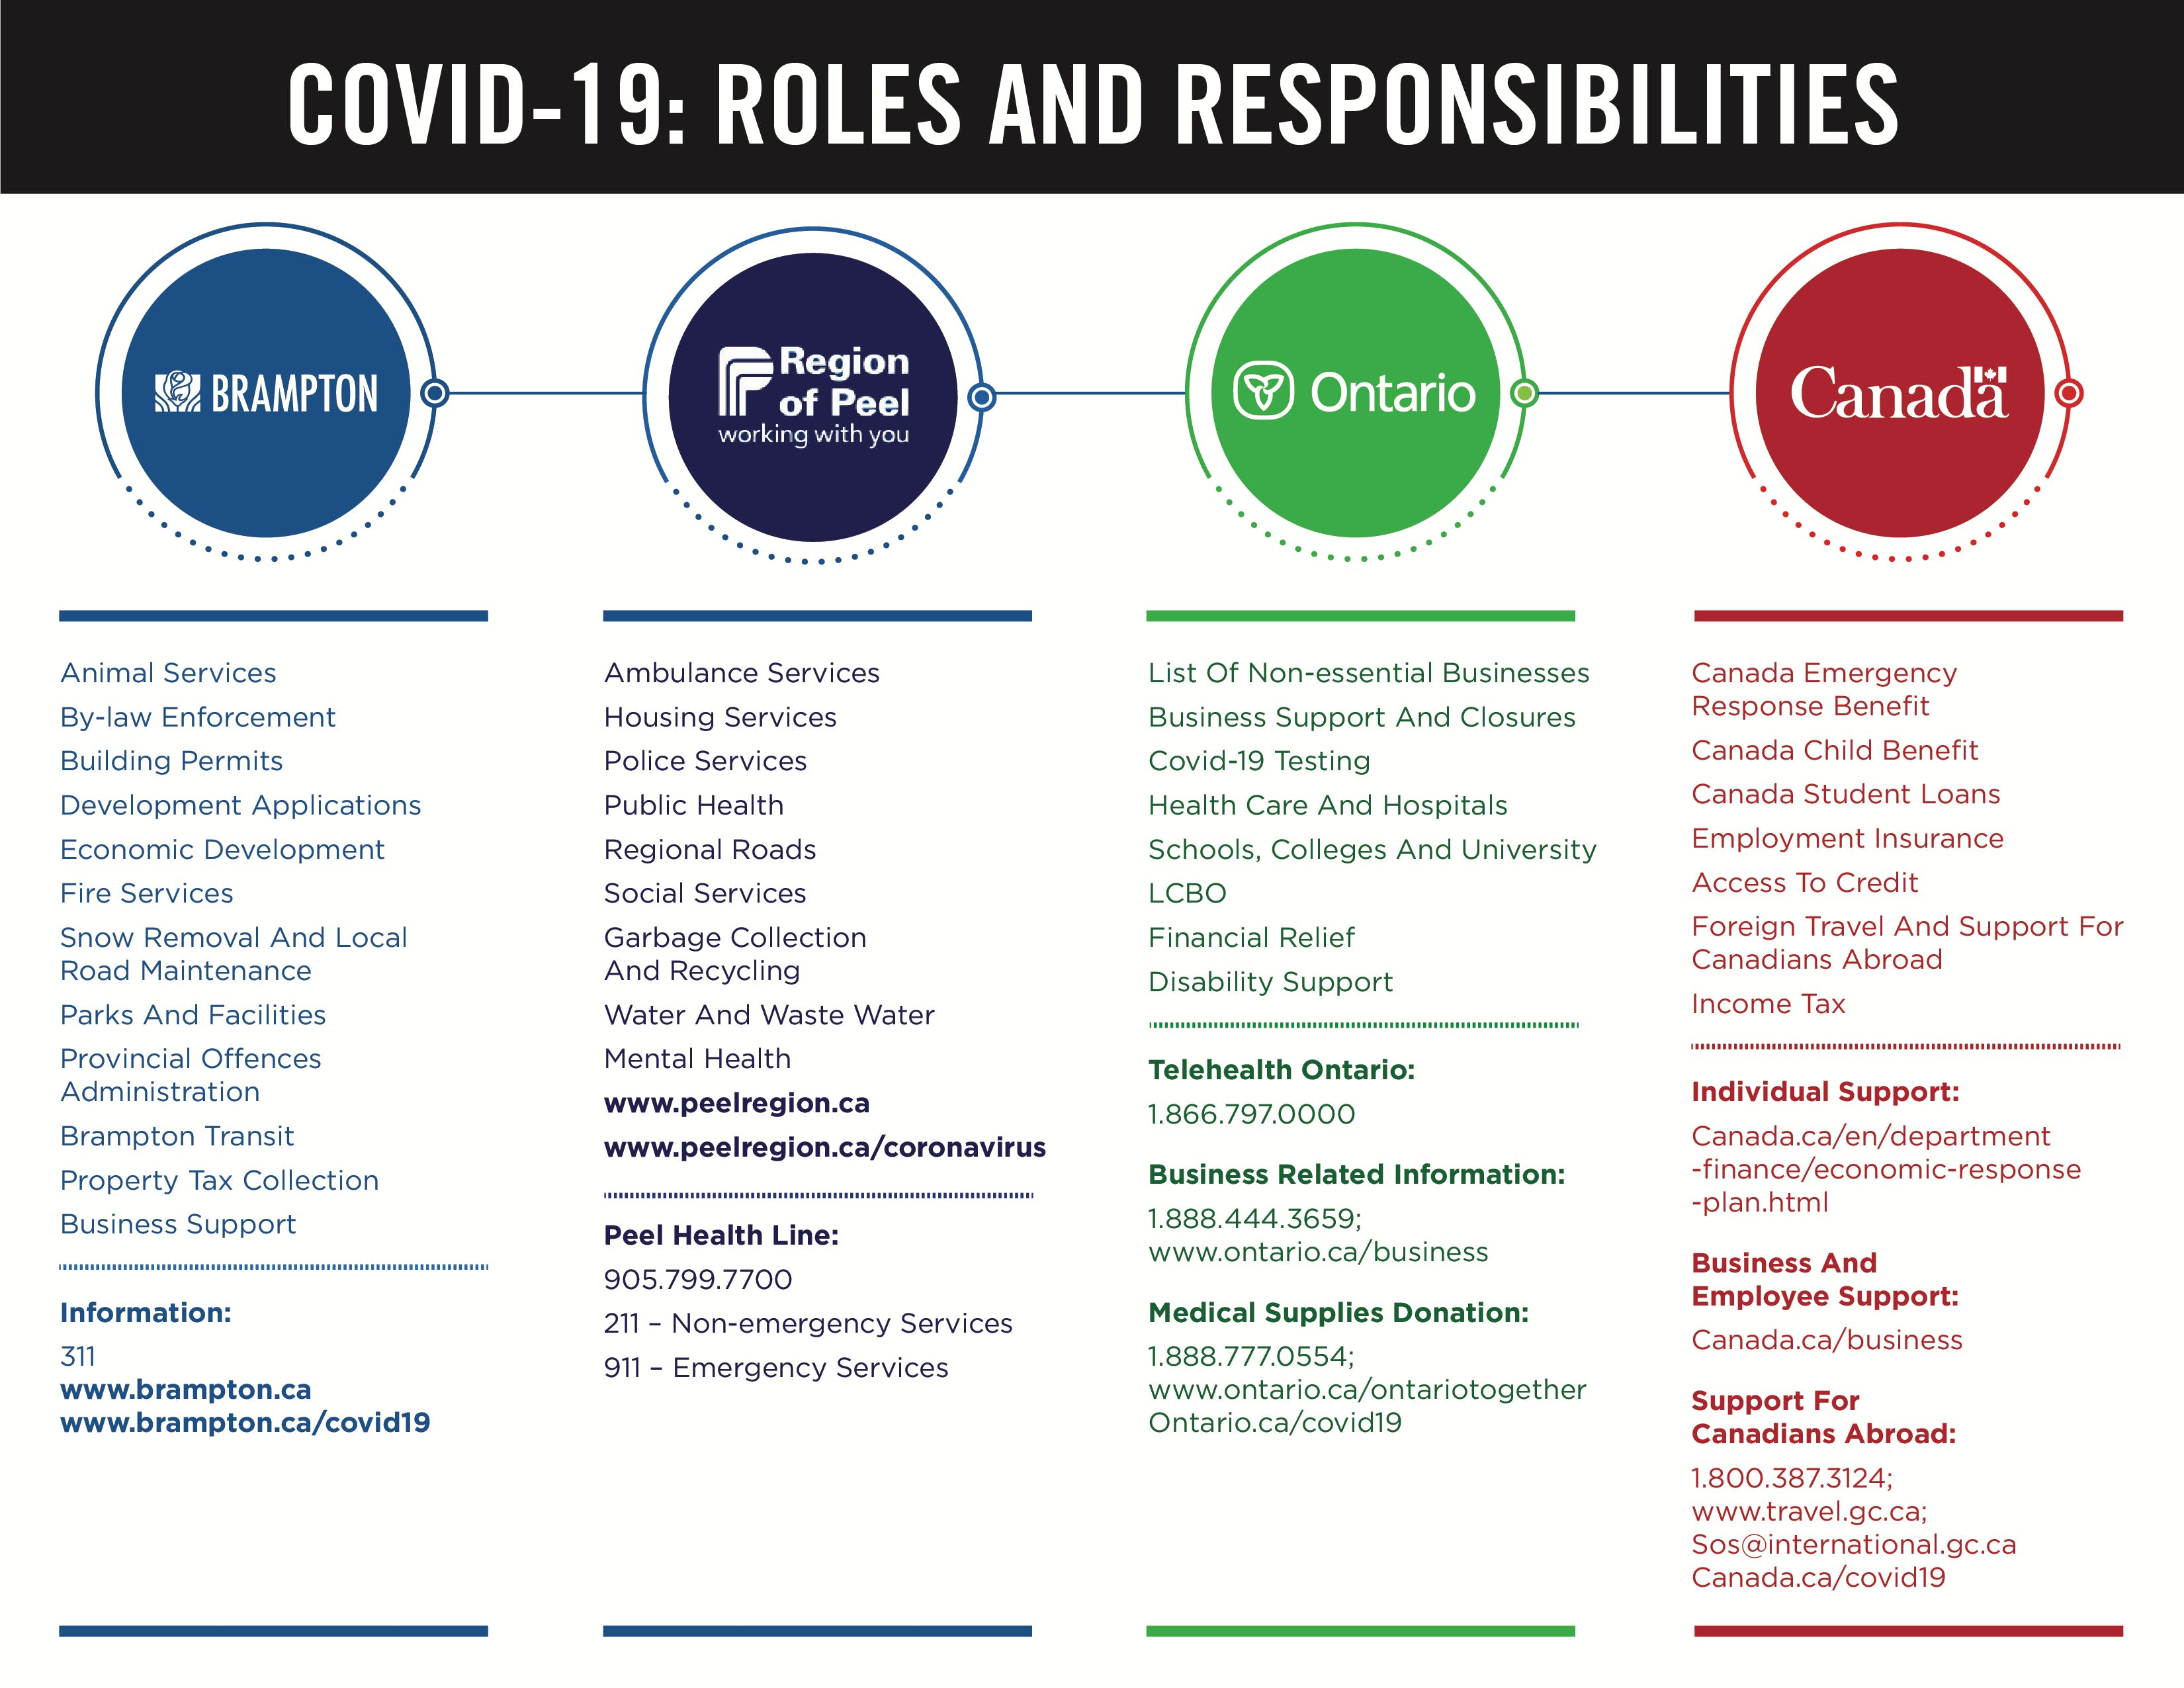 COVID-19 Roles and Responsibilities 1.jpg